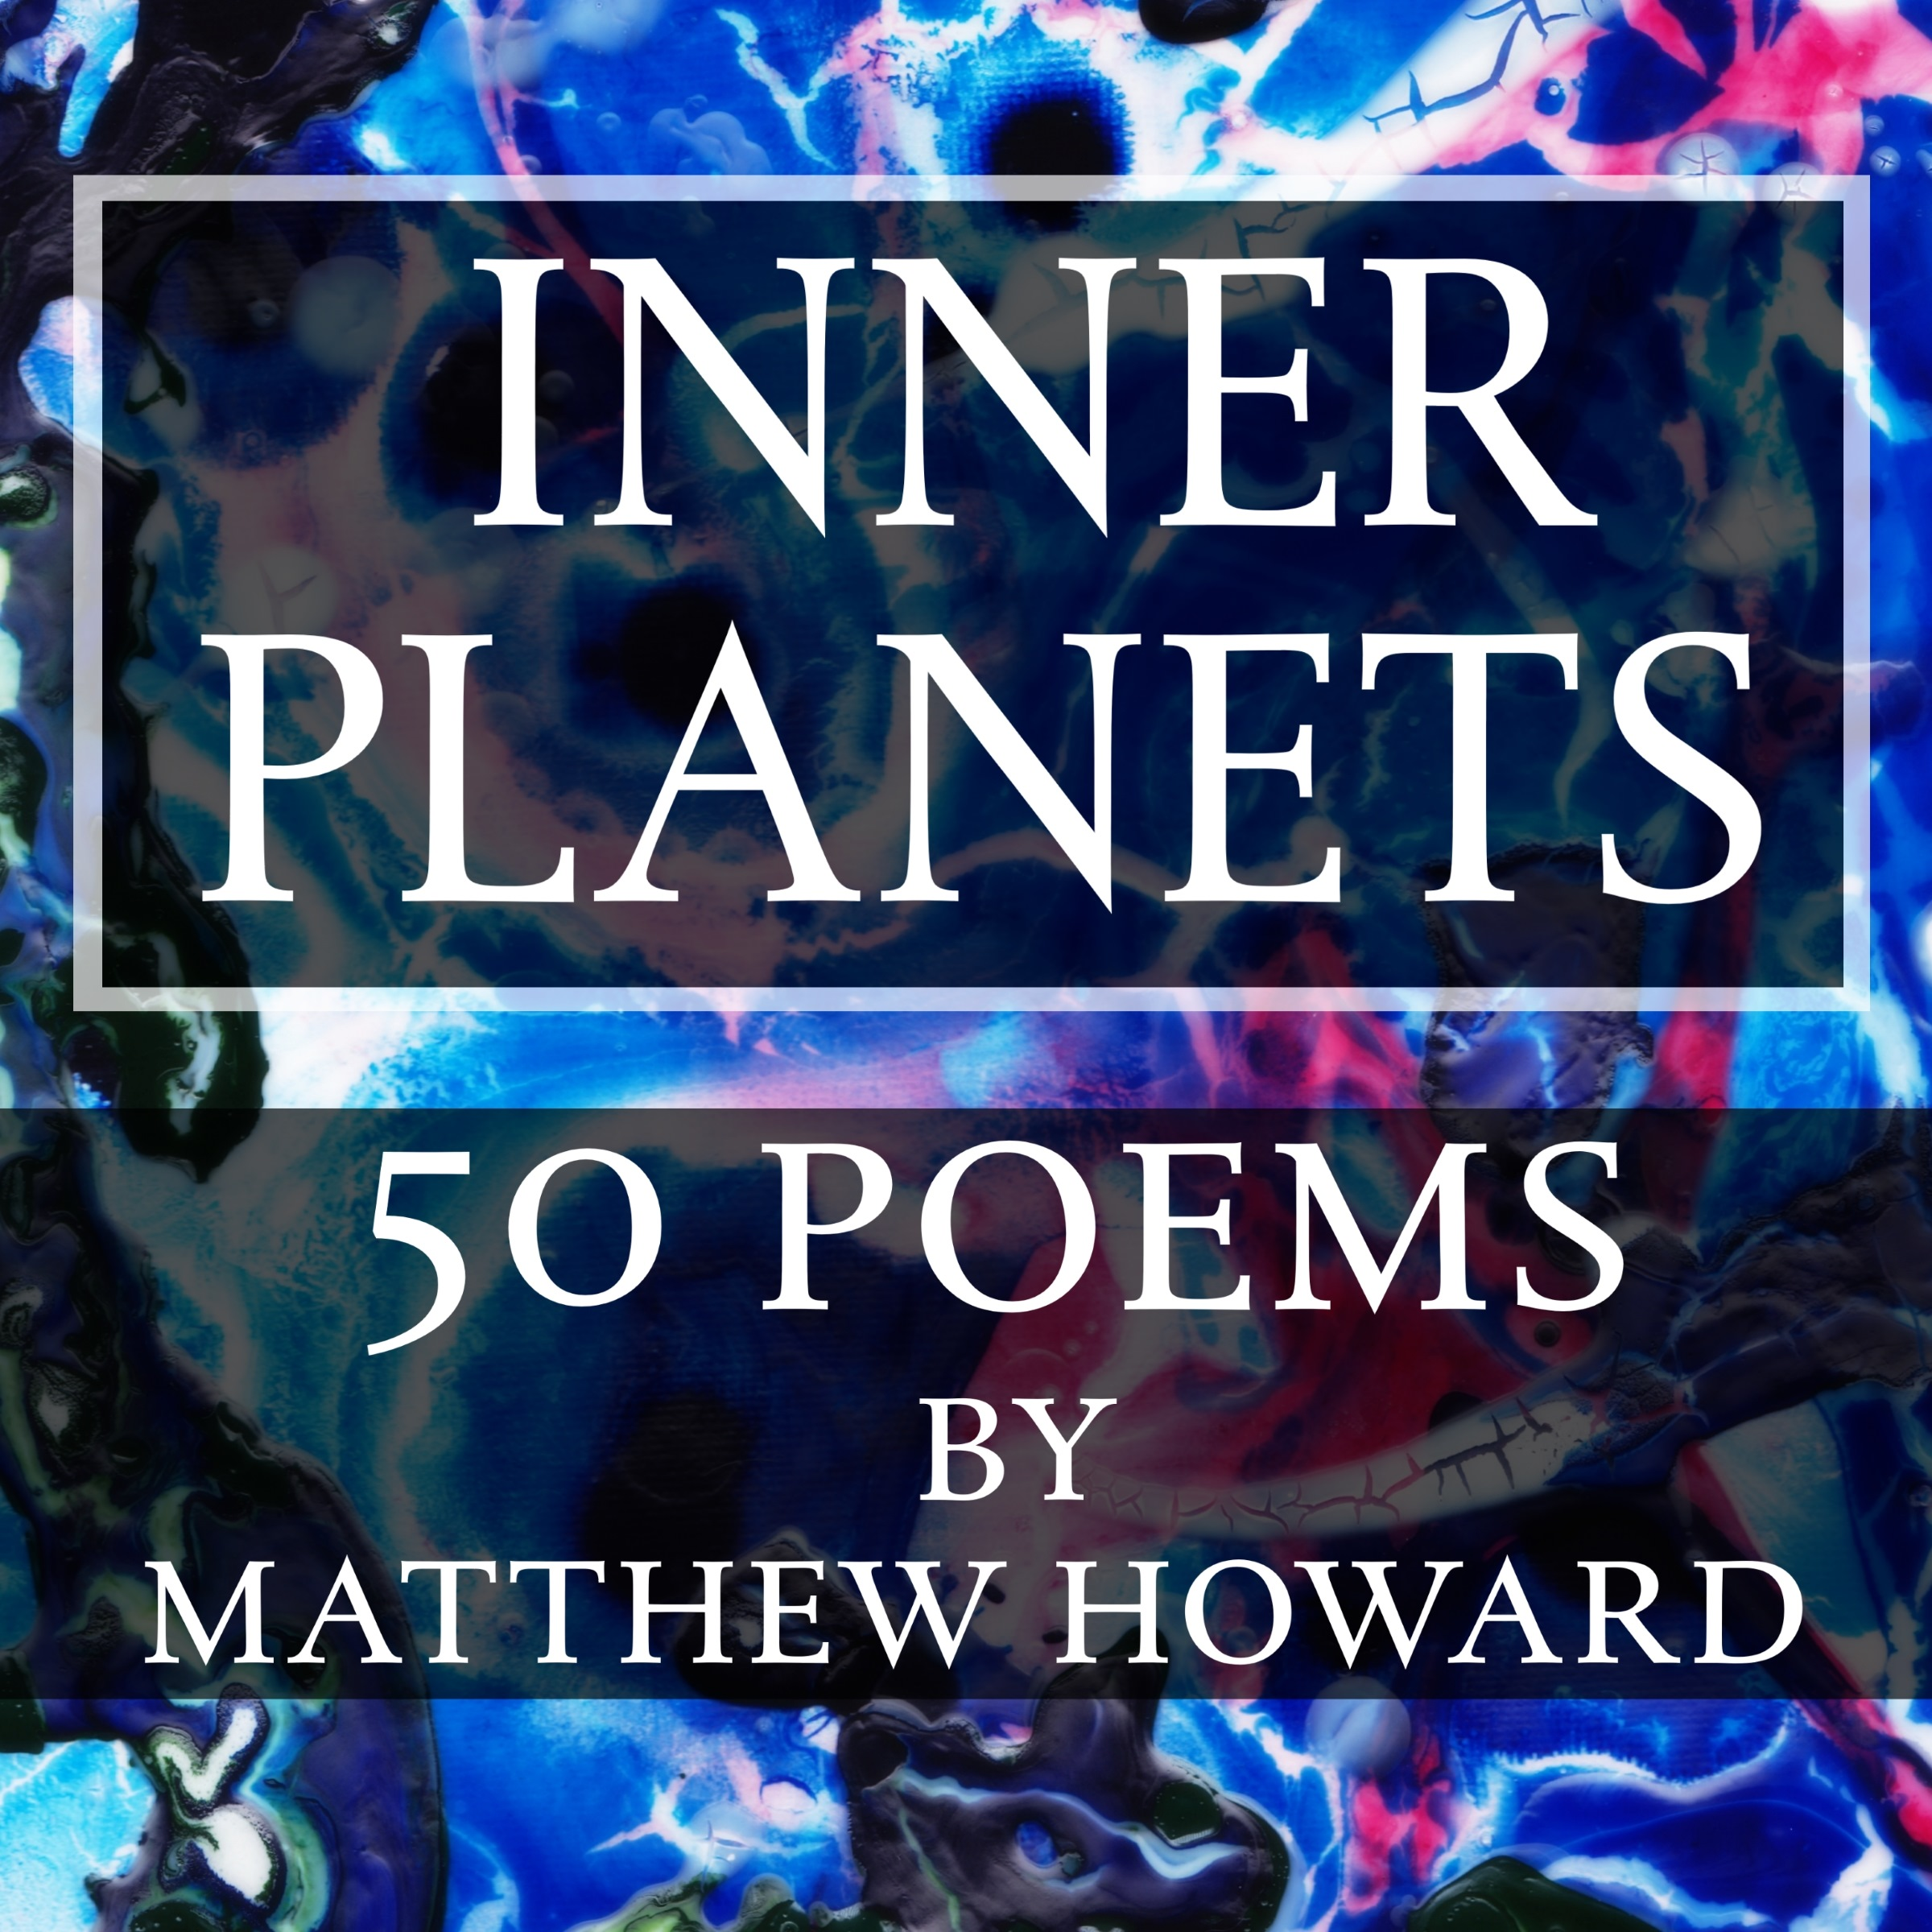 inner planets audiobook cover -  resized for web.jpg